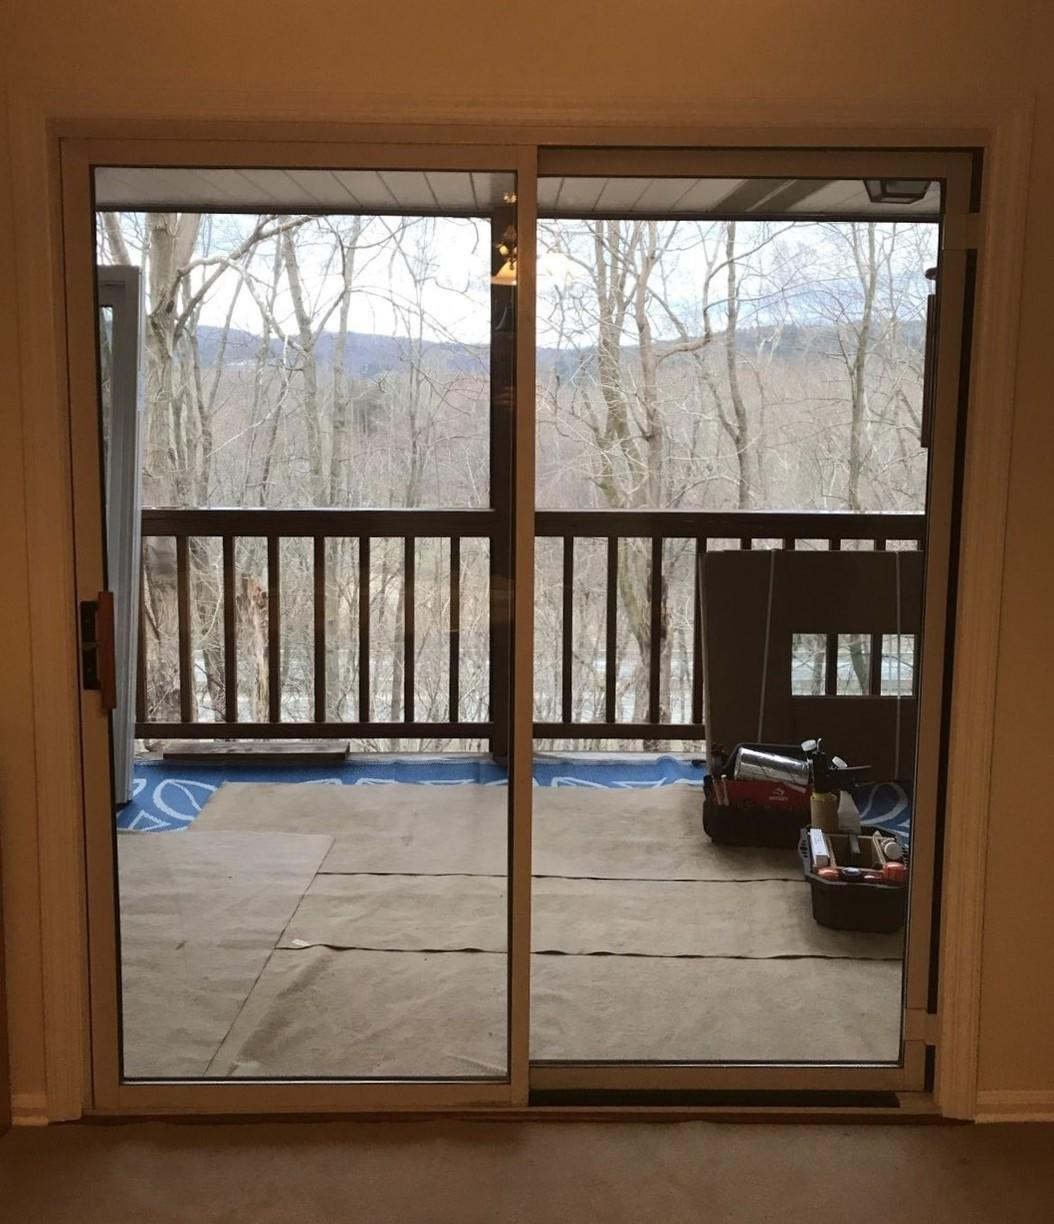 Sliding Glass Door Installation in Ligonier, PA! - After Photo